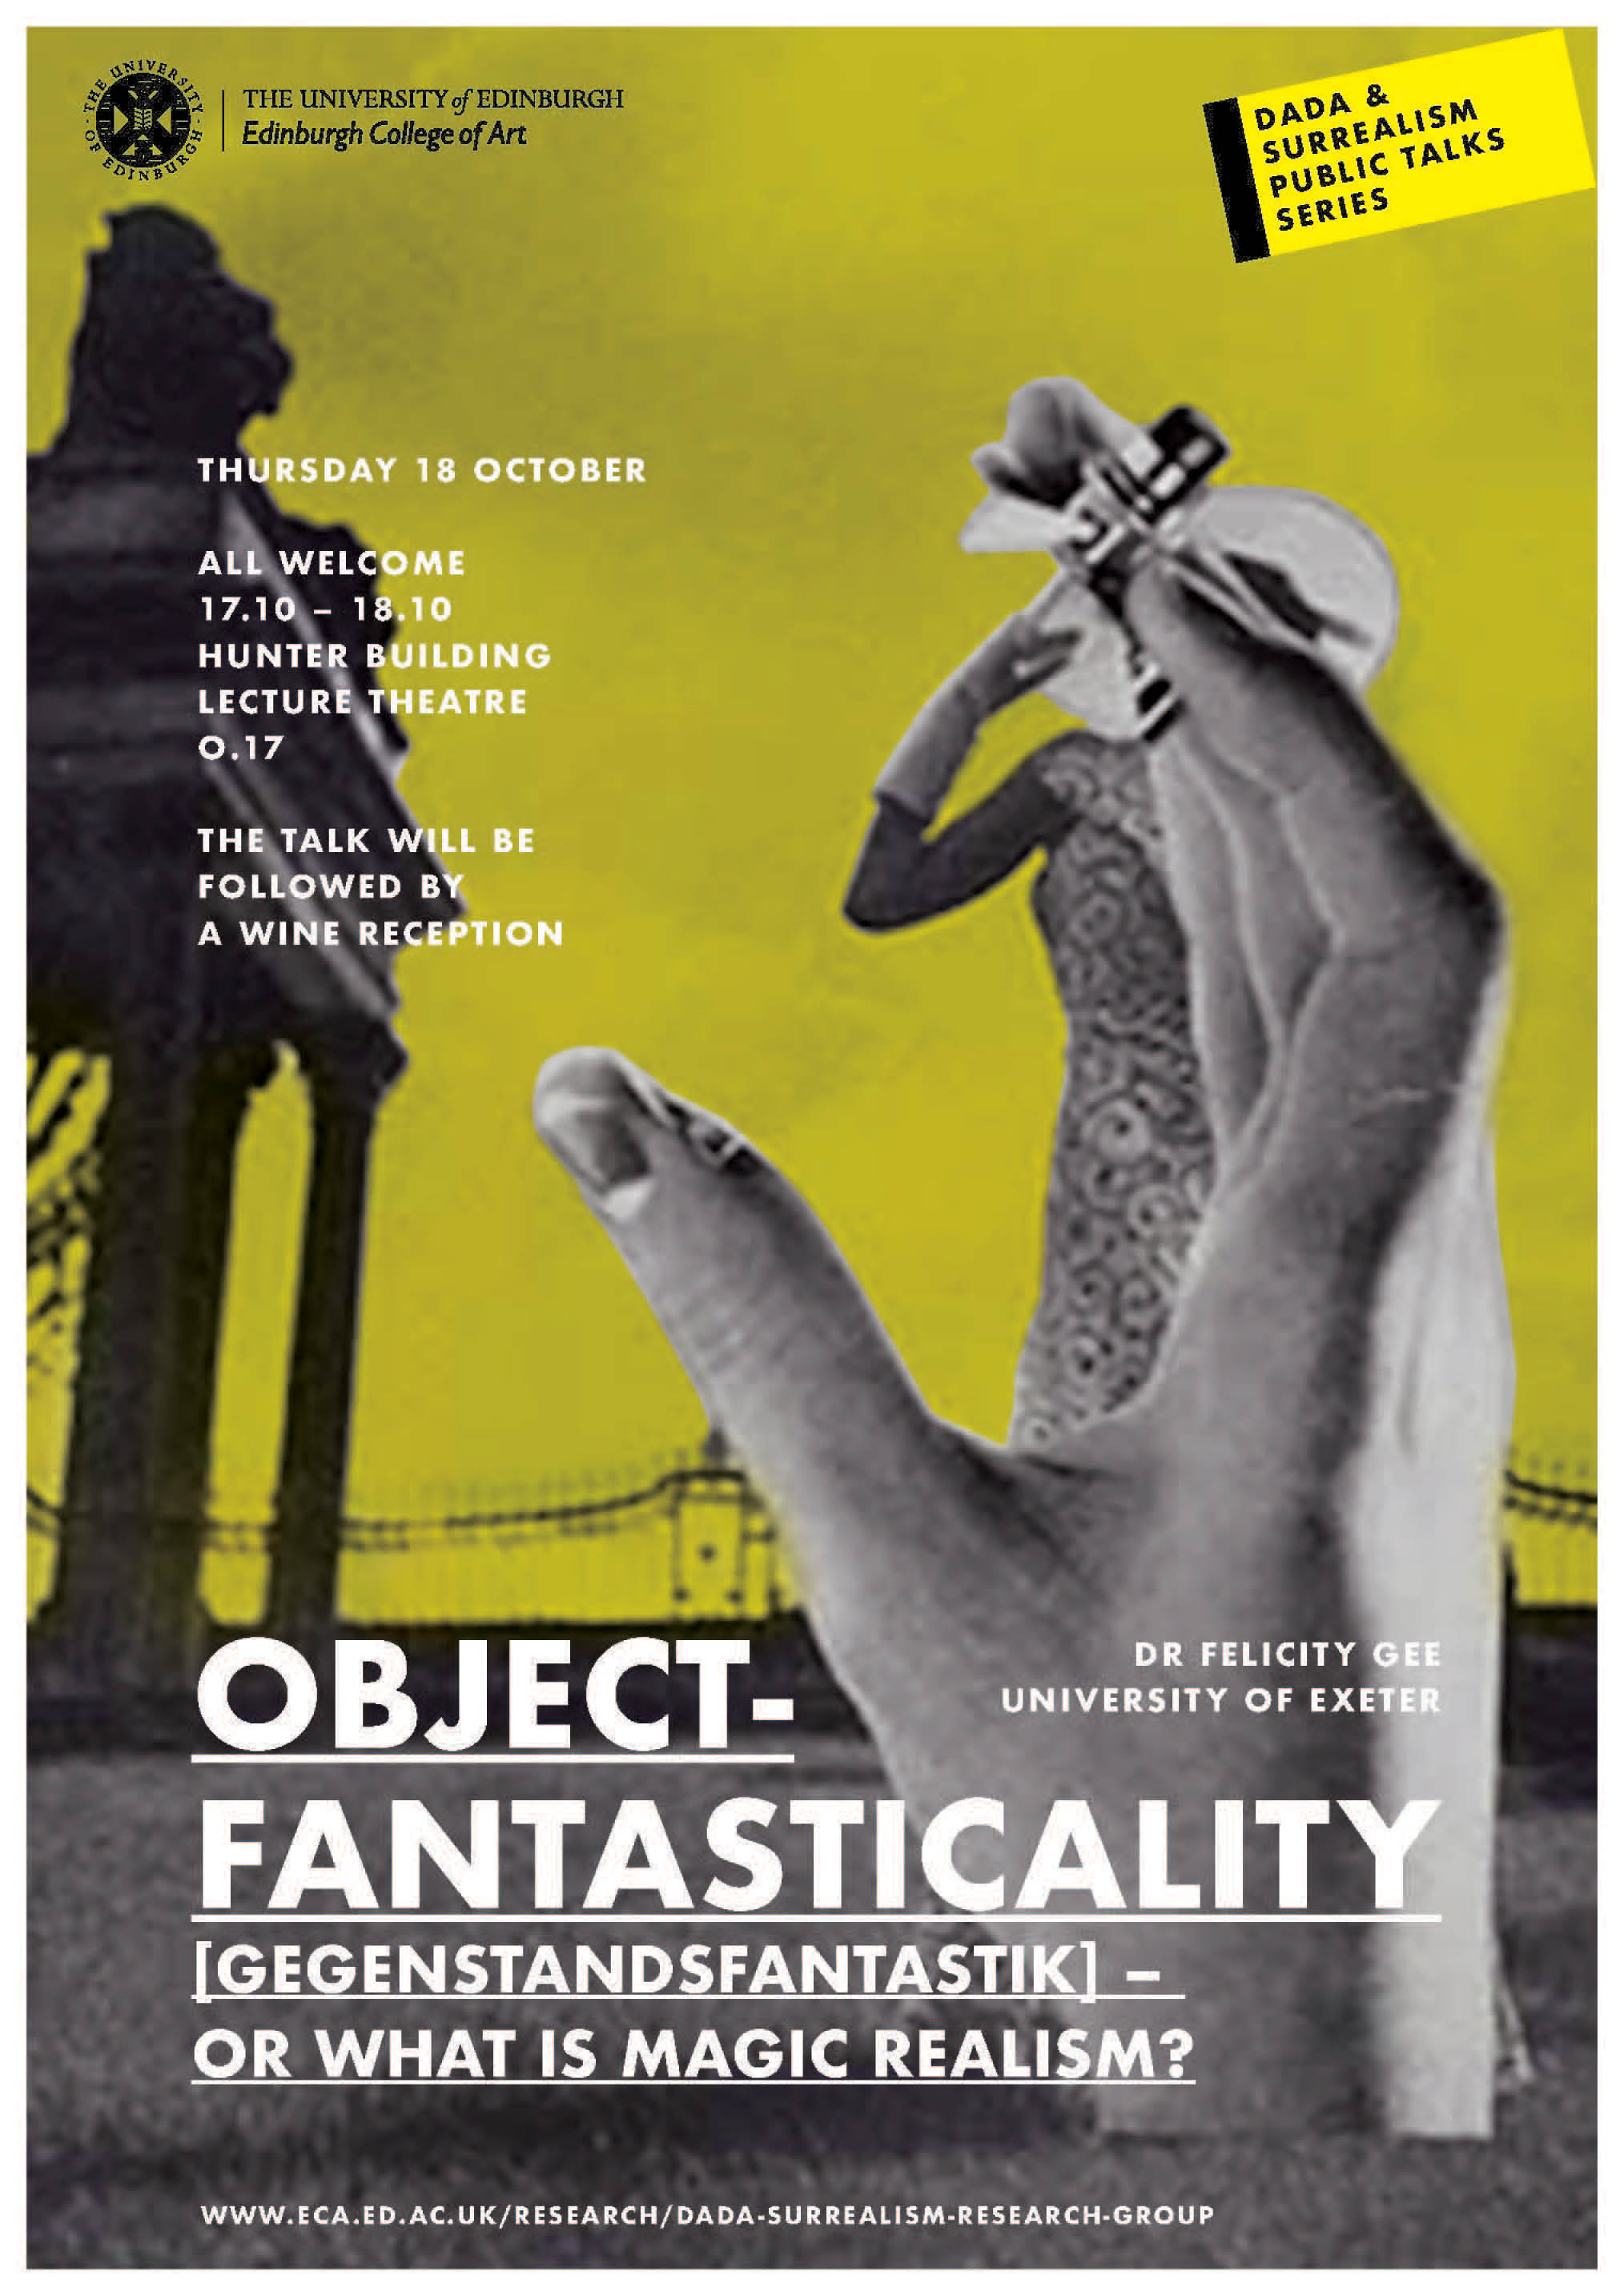 Object-fantasticality [gegenstandsfantastik] - or What is Magic Realism?